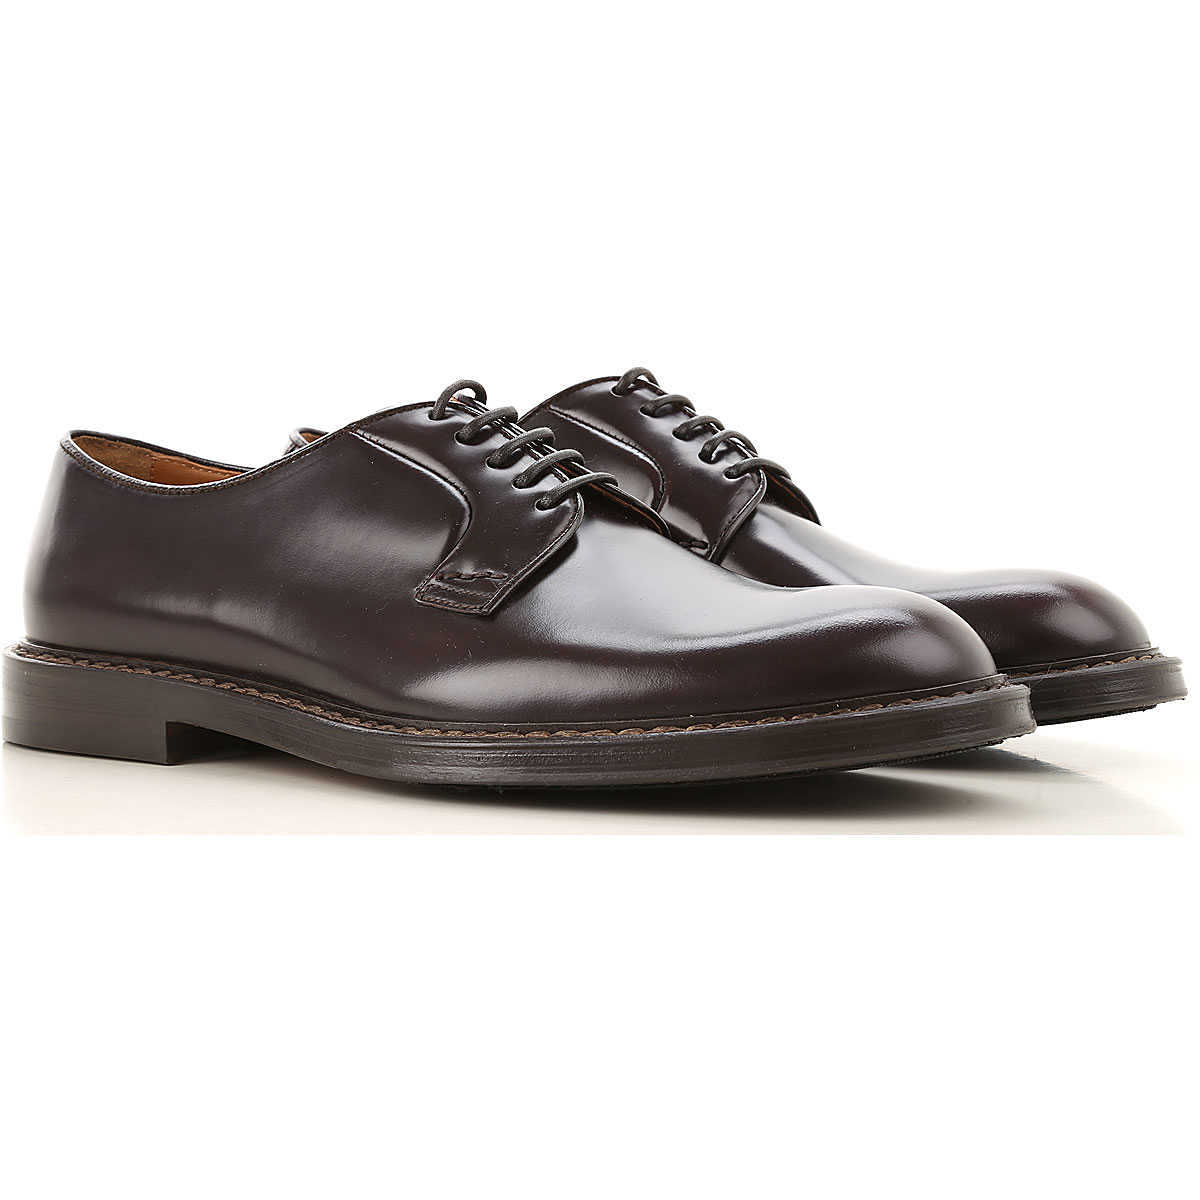 Doucals Lace Up Shoes for Men Oxfords 5.5 6 6.5 6.75 7 7.5 8 8.5 9 9.25 9.5 Derbies and Brogues UK - GOOFASH